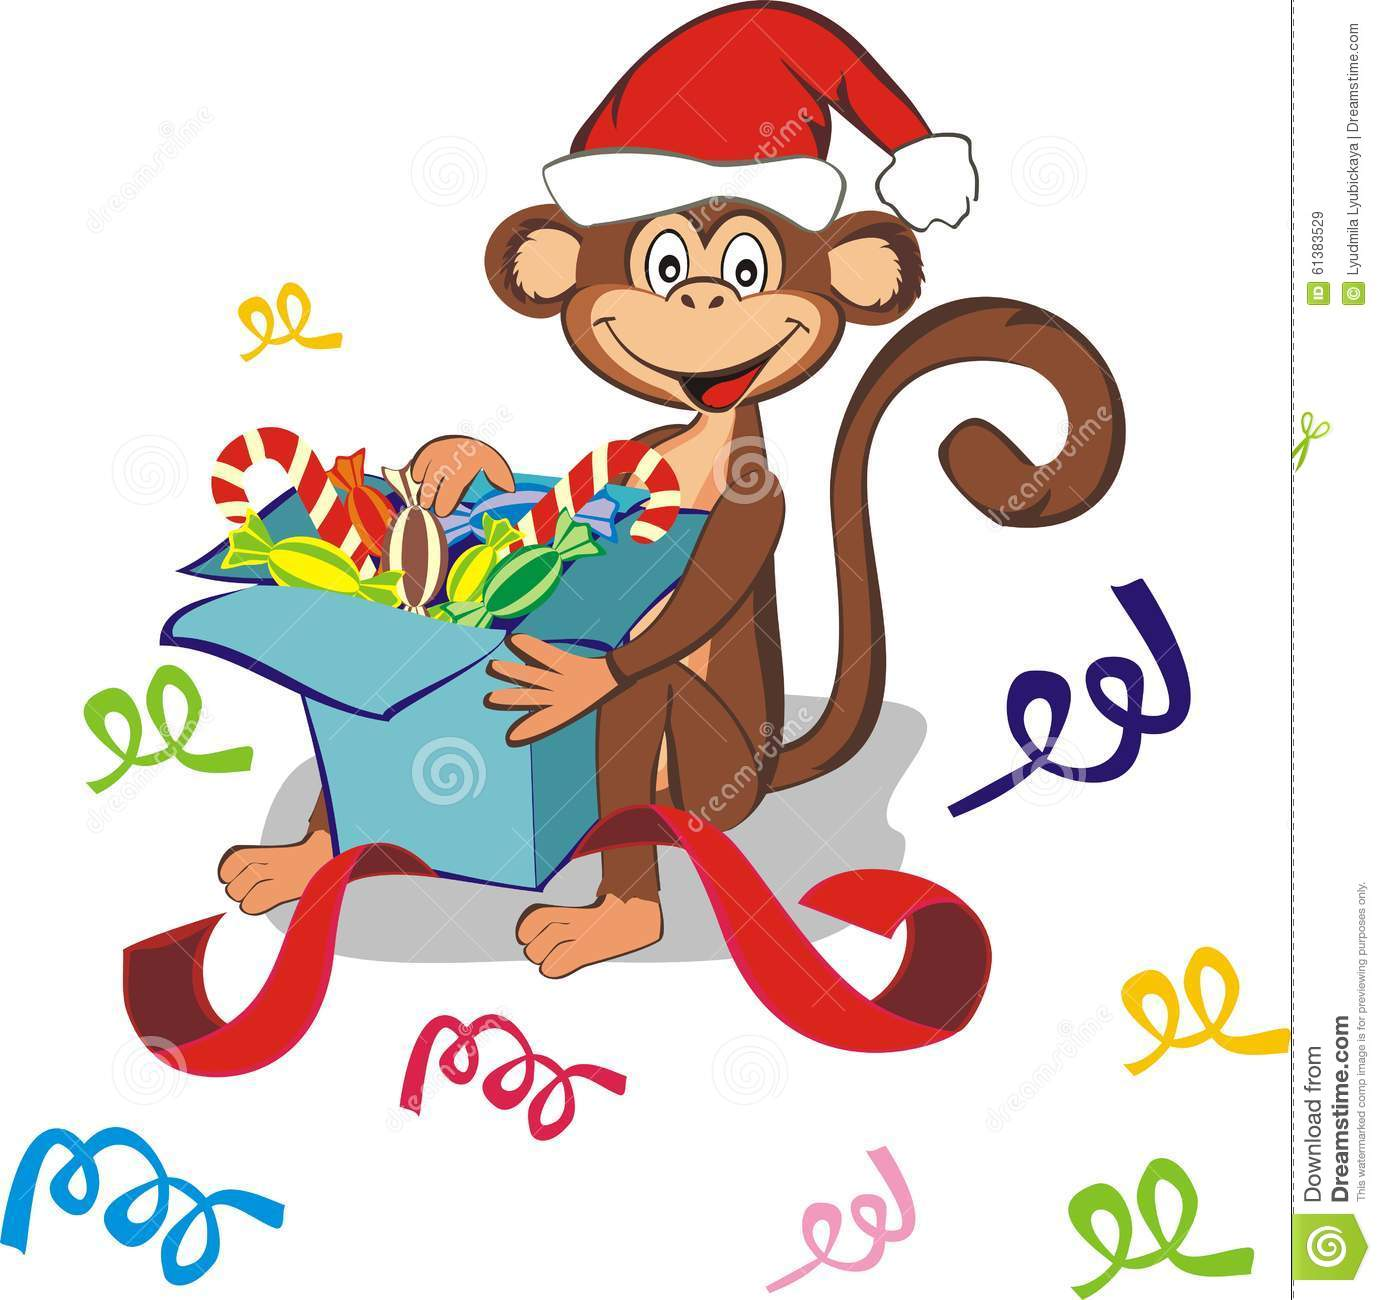 Happy monkey in a gift box stock image image of background 1354221 funny monkey with gift box royalty free stock images buycottarizona Gallery